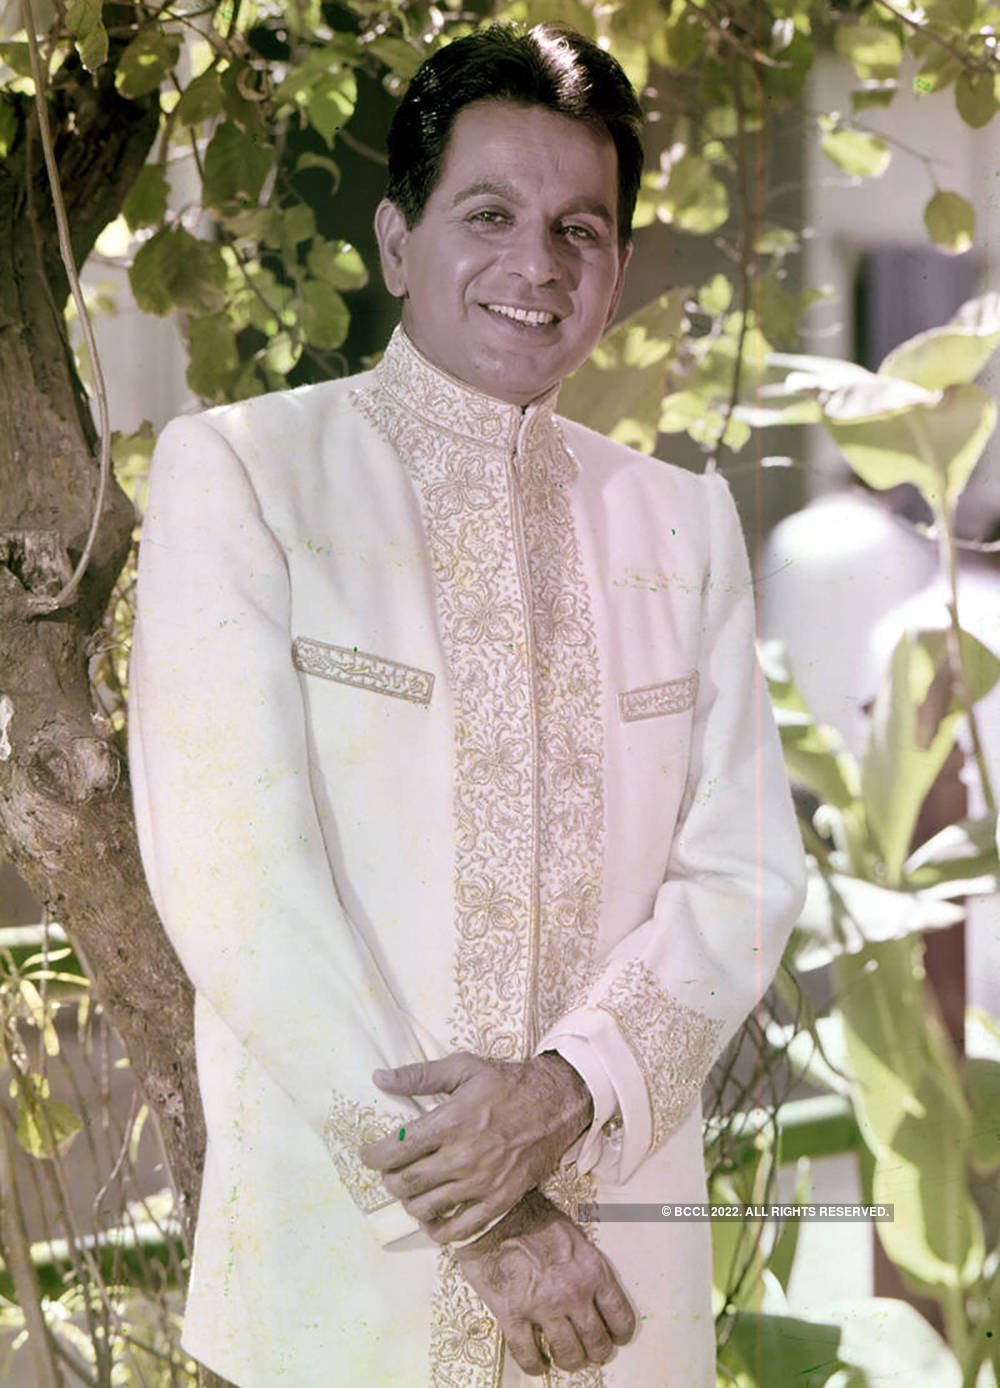 #GoldenFrames: Pictorial Biography of Dilip Kumar, Bollywood's first Khan!